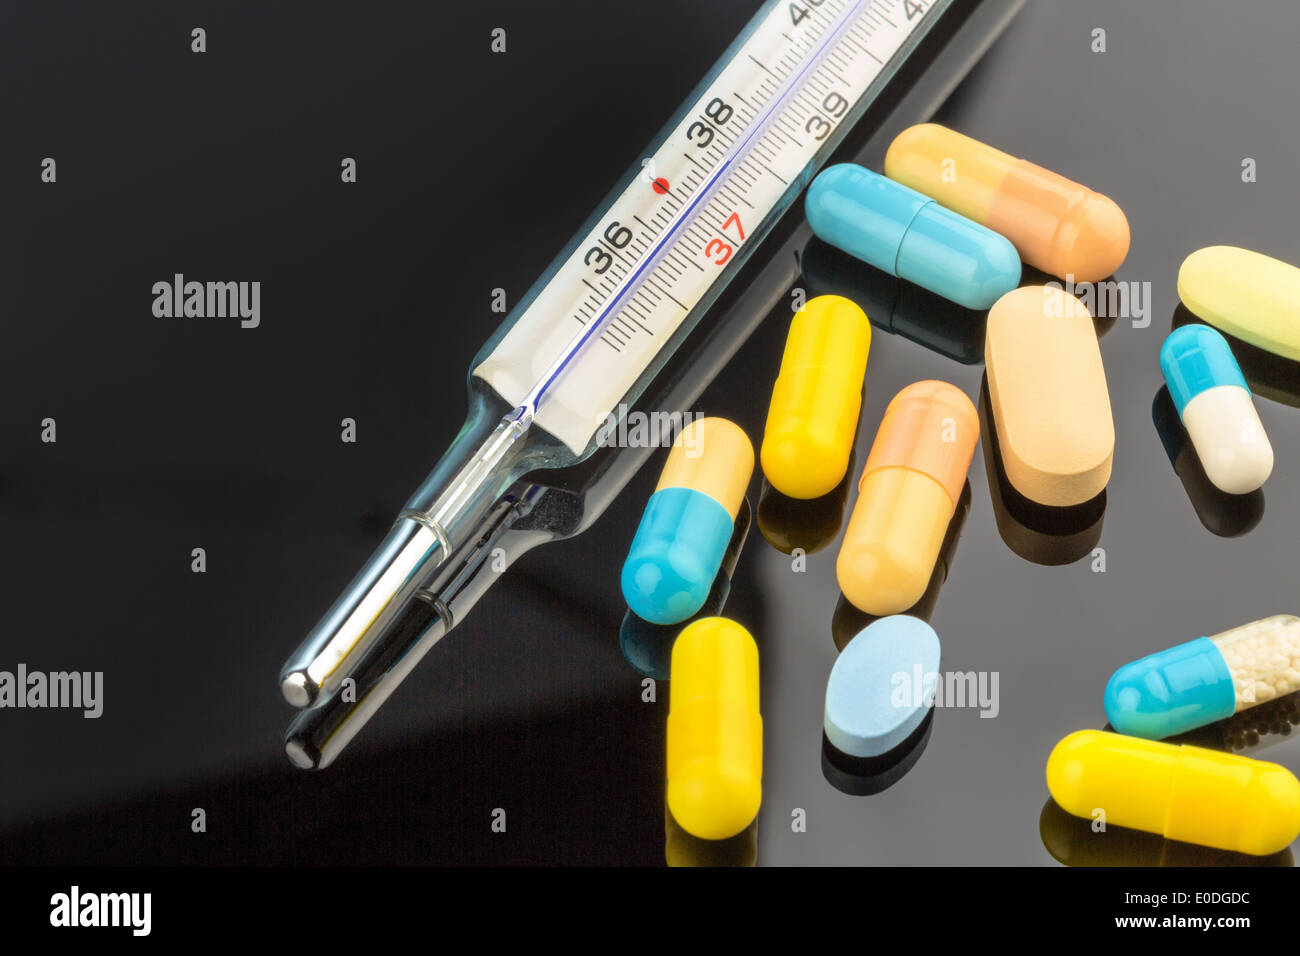 A clinical thermometer and tablets. Symbolic photo for influenza and colds, Ein Fieberthermometer und Tabletten. Symbolfoto fuer - Stock Image